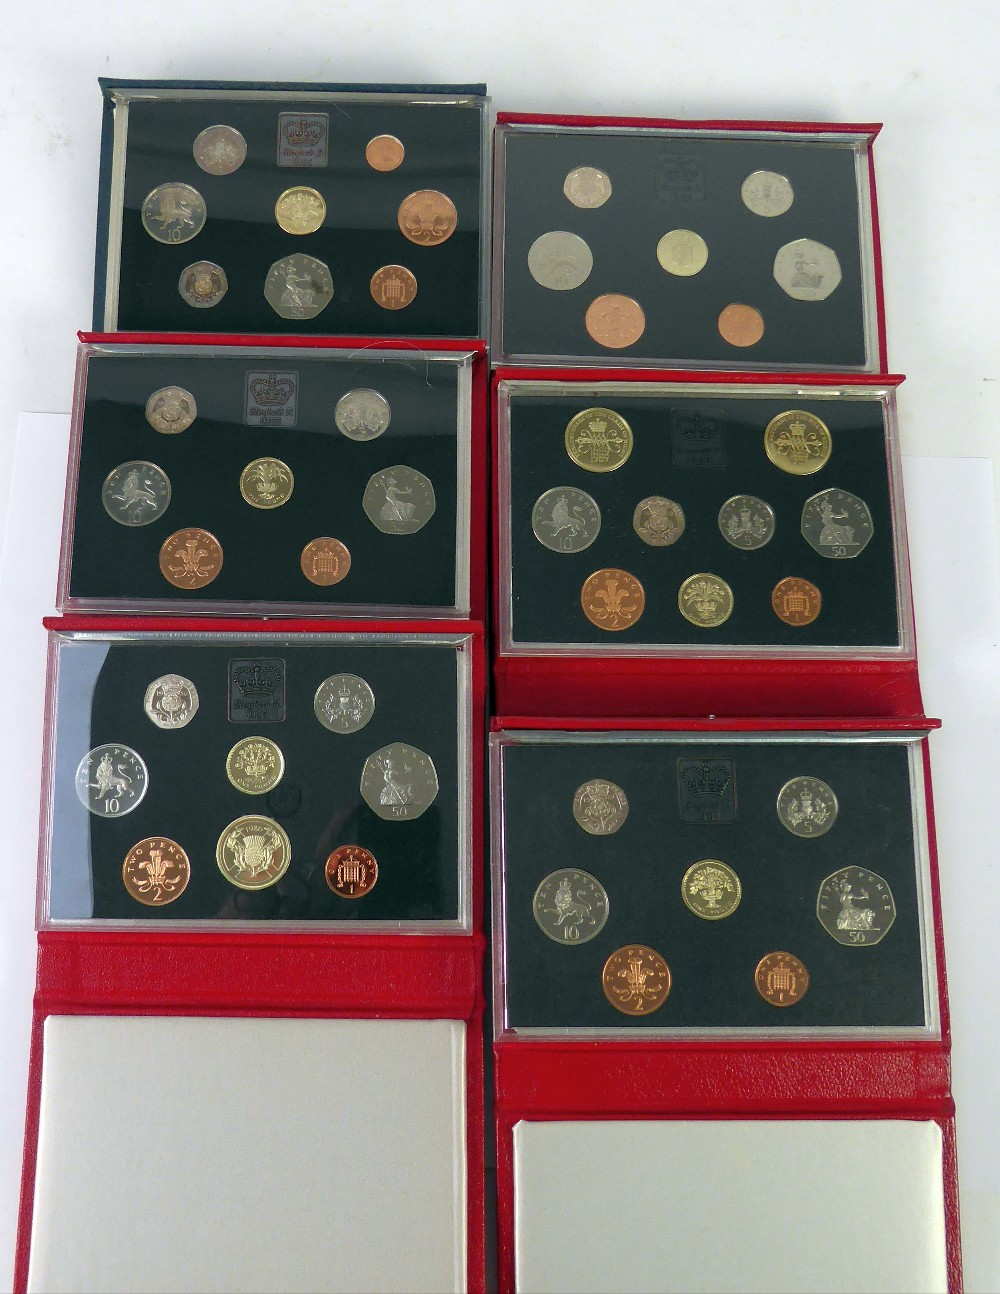 Lot 66 - ROYAL MINT ISSUED COMMEMORATIVE COIN SETS 1984-1989, in original boxes unused (6)